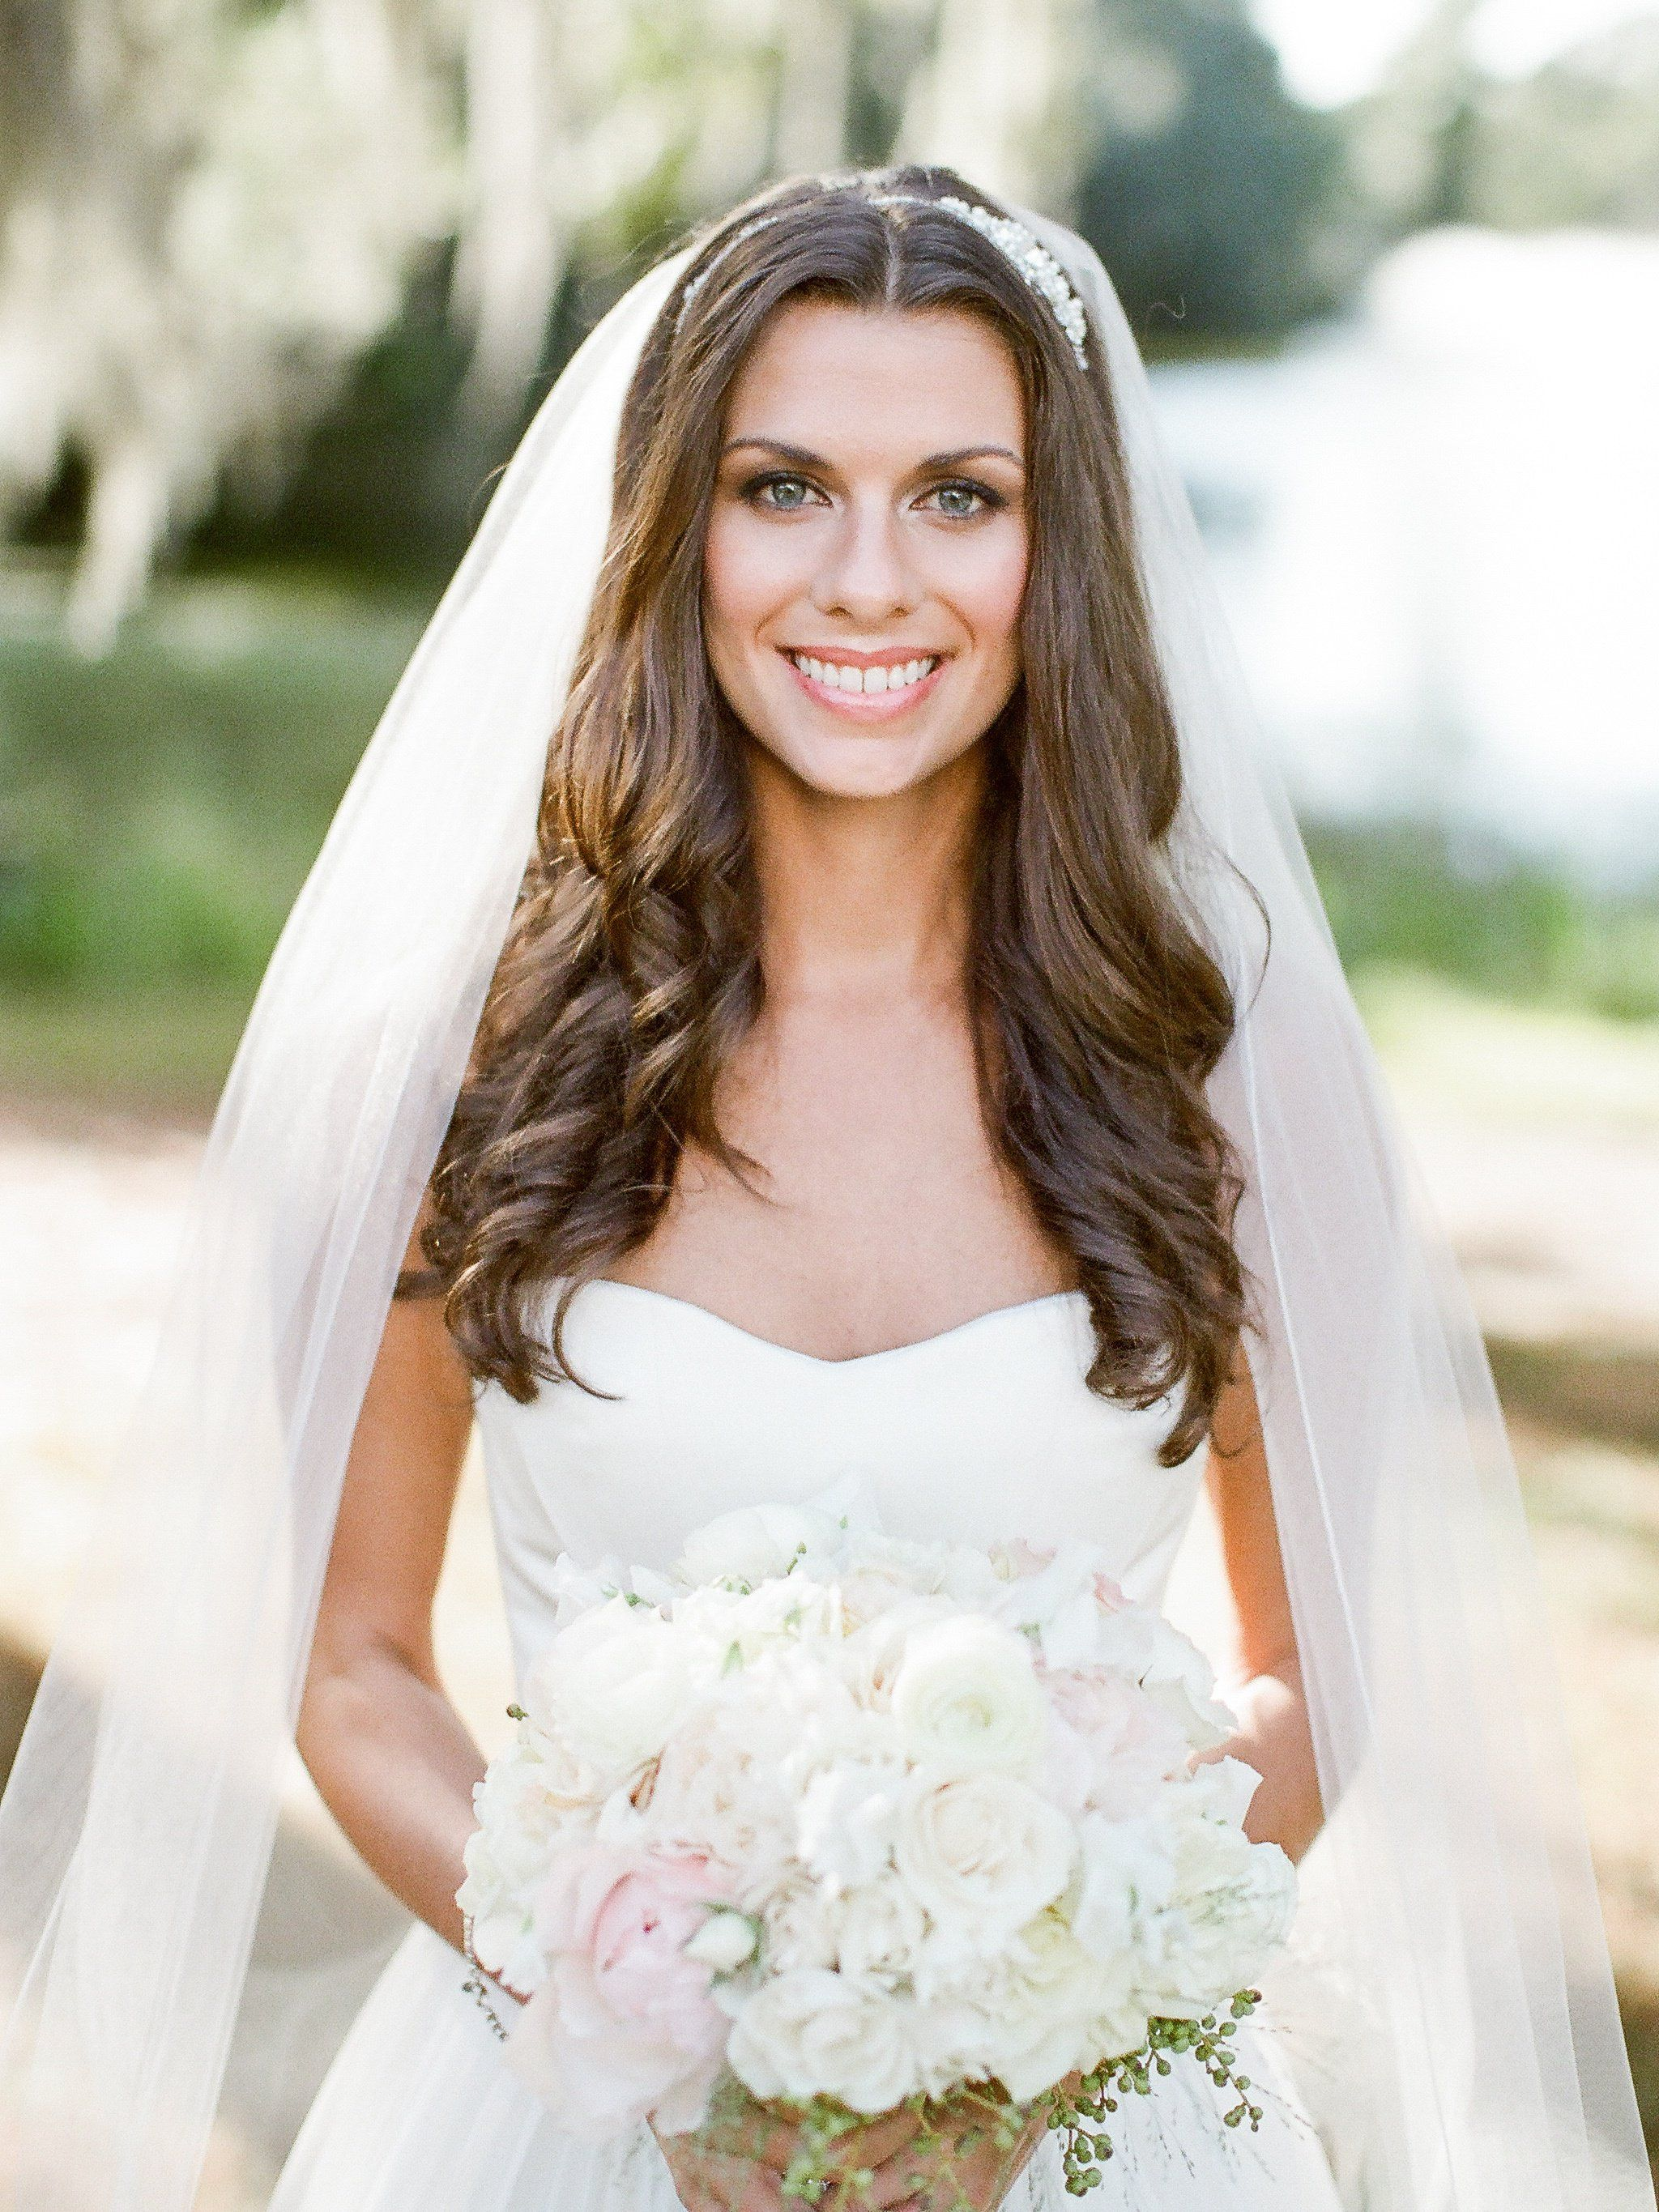 loose curls with veil and large bouquet | wedding | pinterest